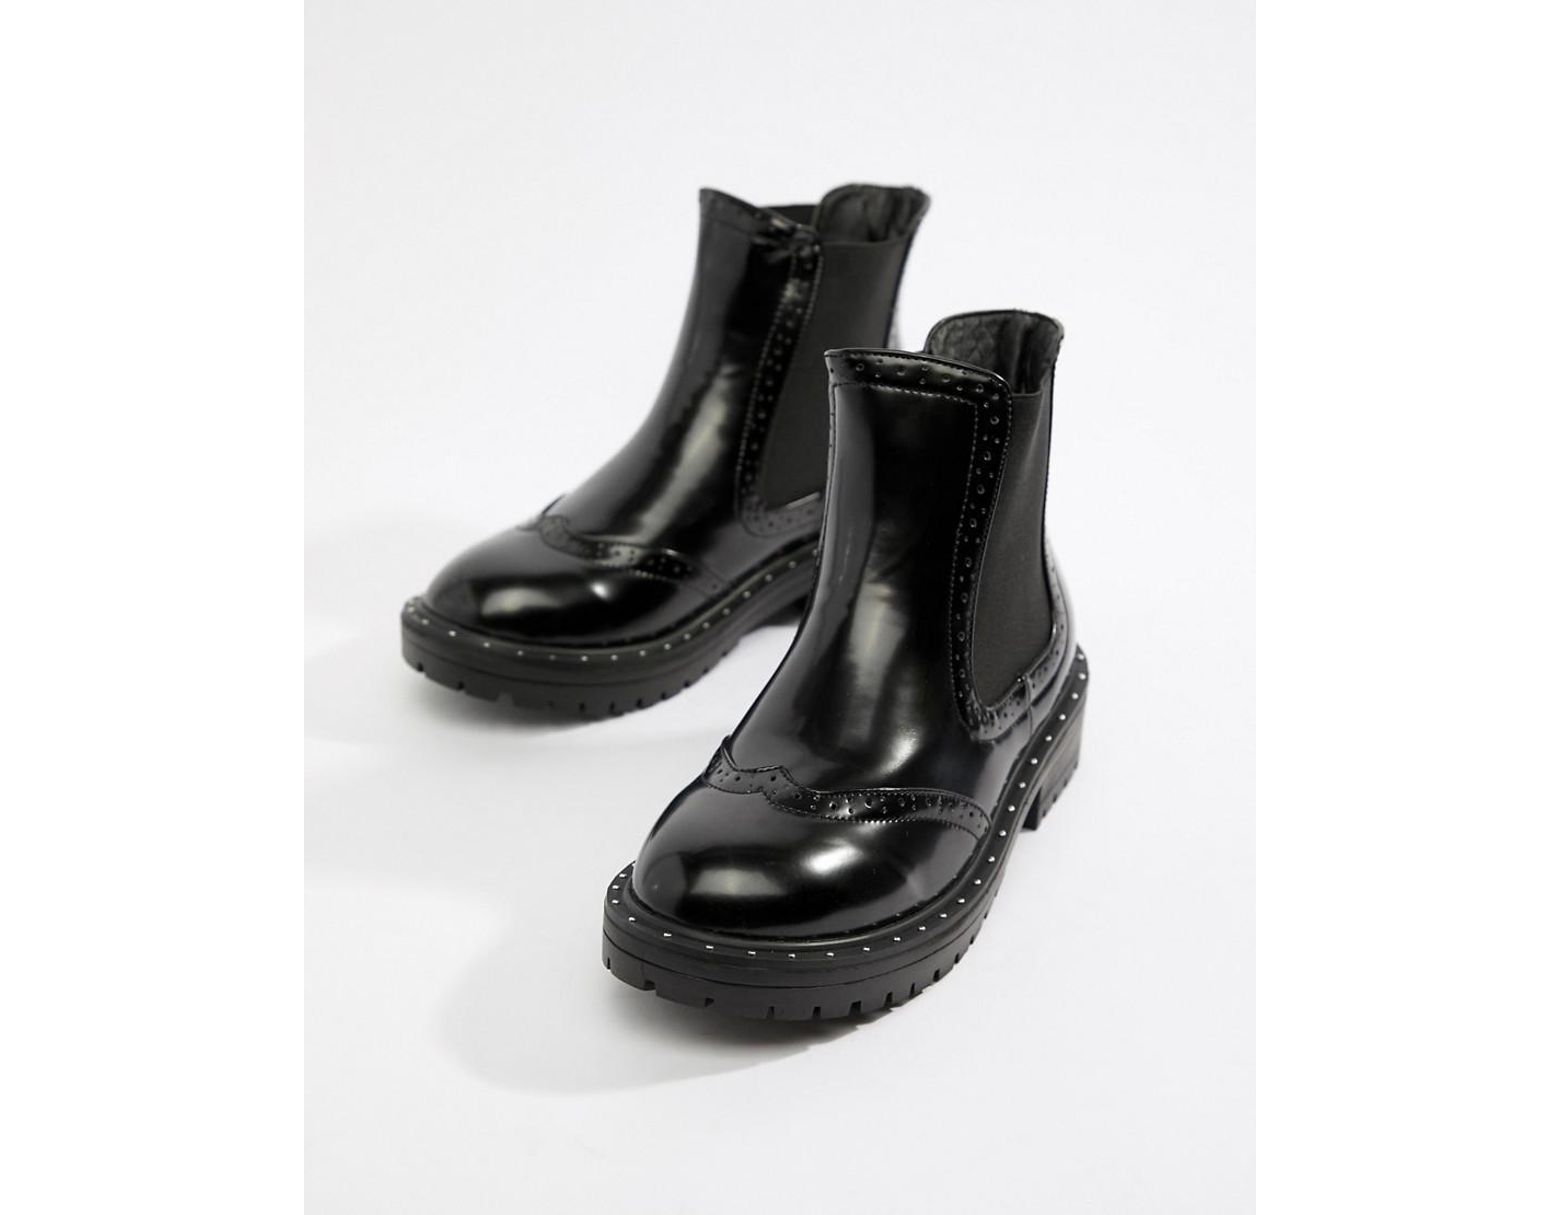 852313eb004 Women's Black Wide Fit Chunky Chelsea Ankle Boots